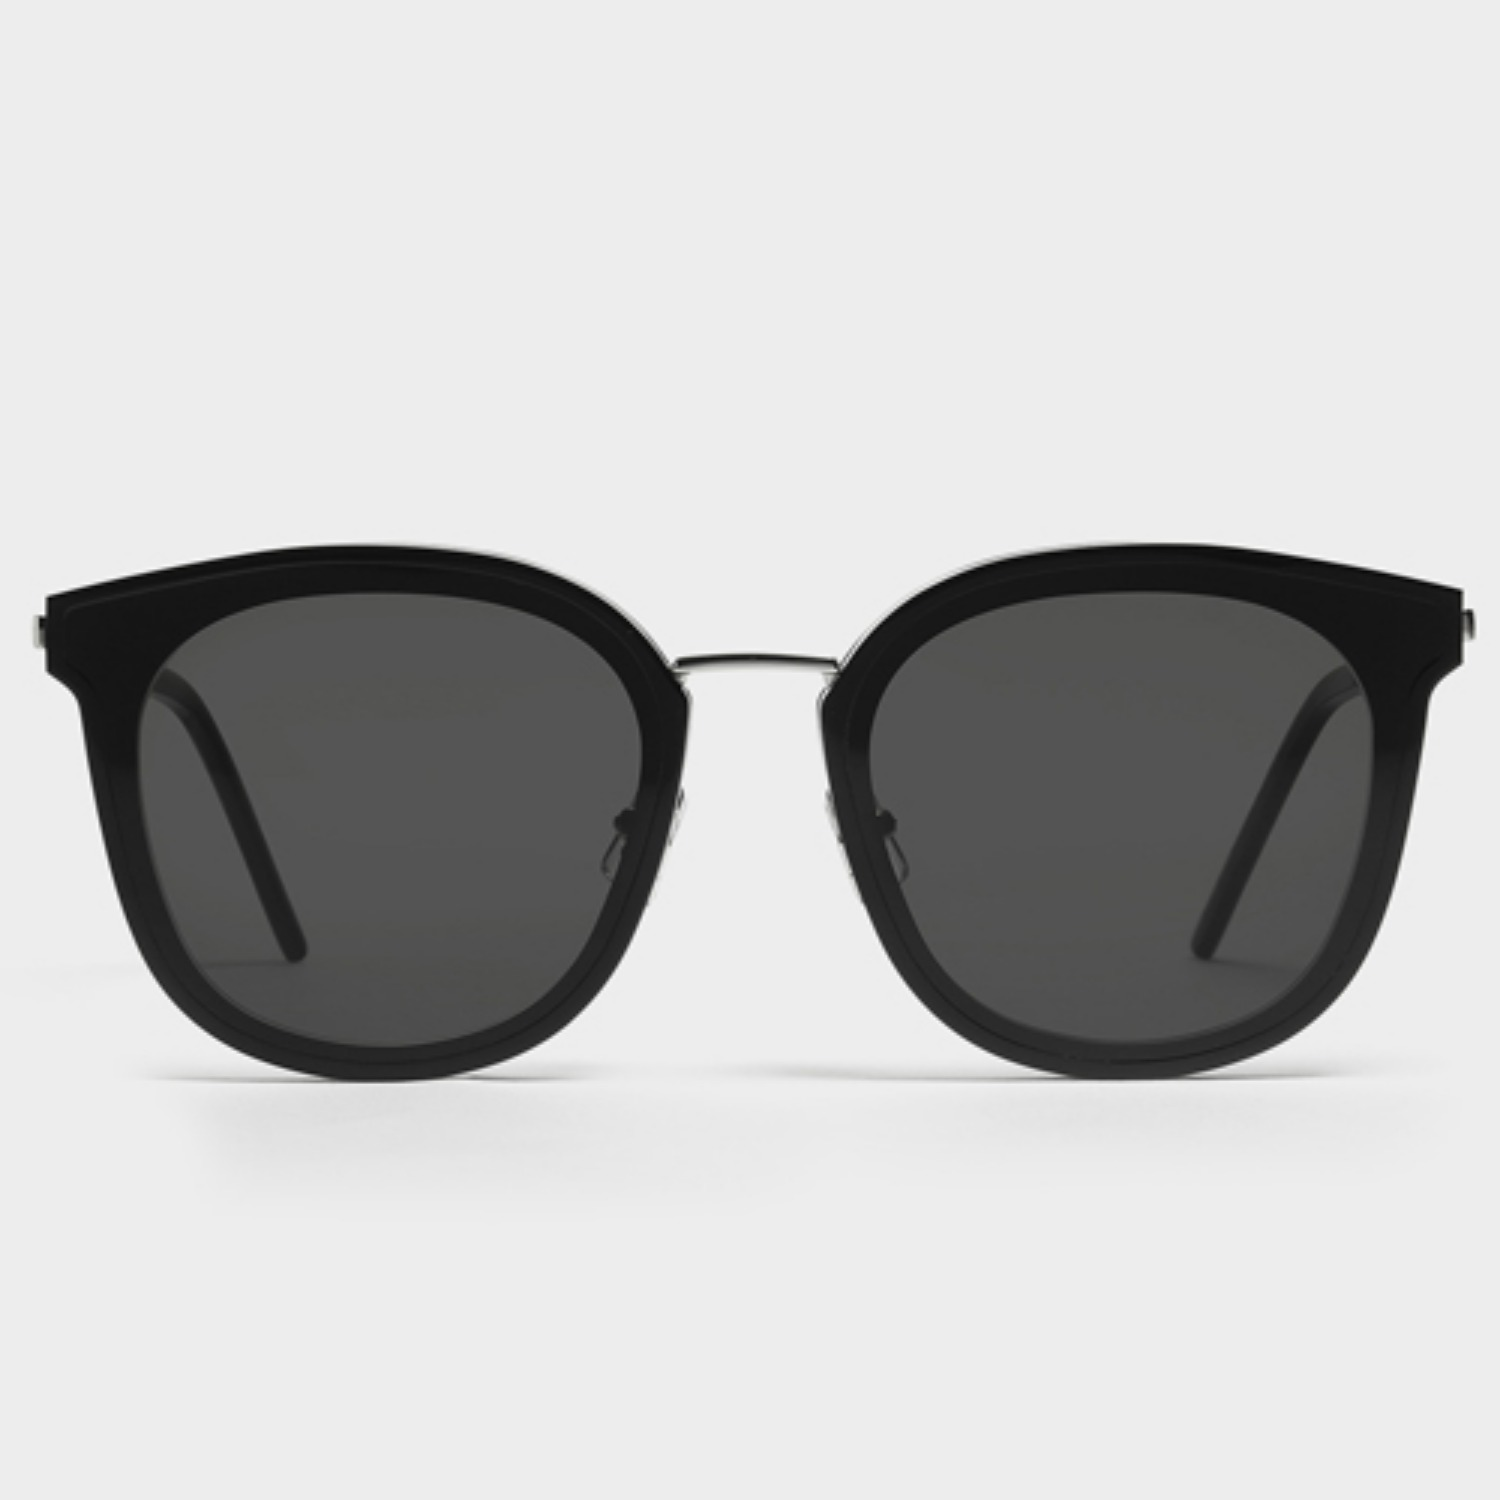 2aec251dac Quick View Before add to wish list. Product    GENTLE MONSTER  MAMABU 01  Oversized Cat Eye Black Frame Sunglasses